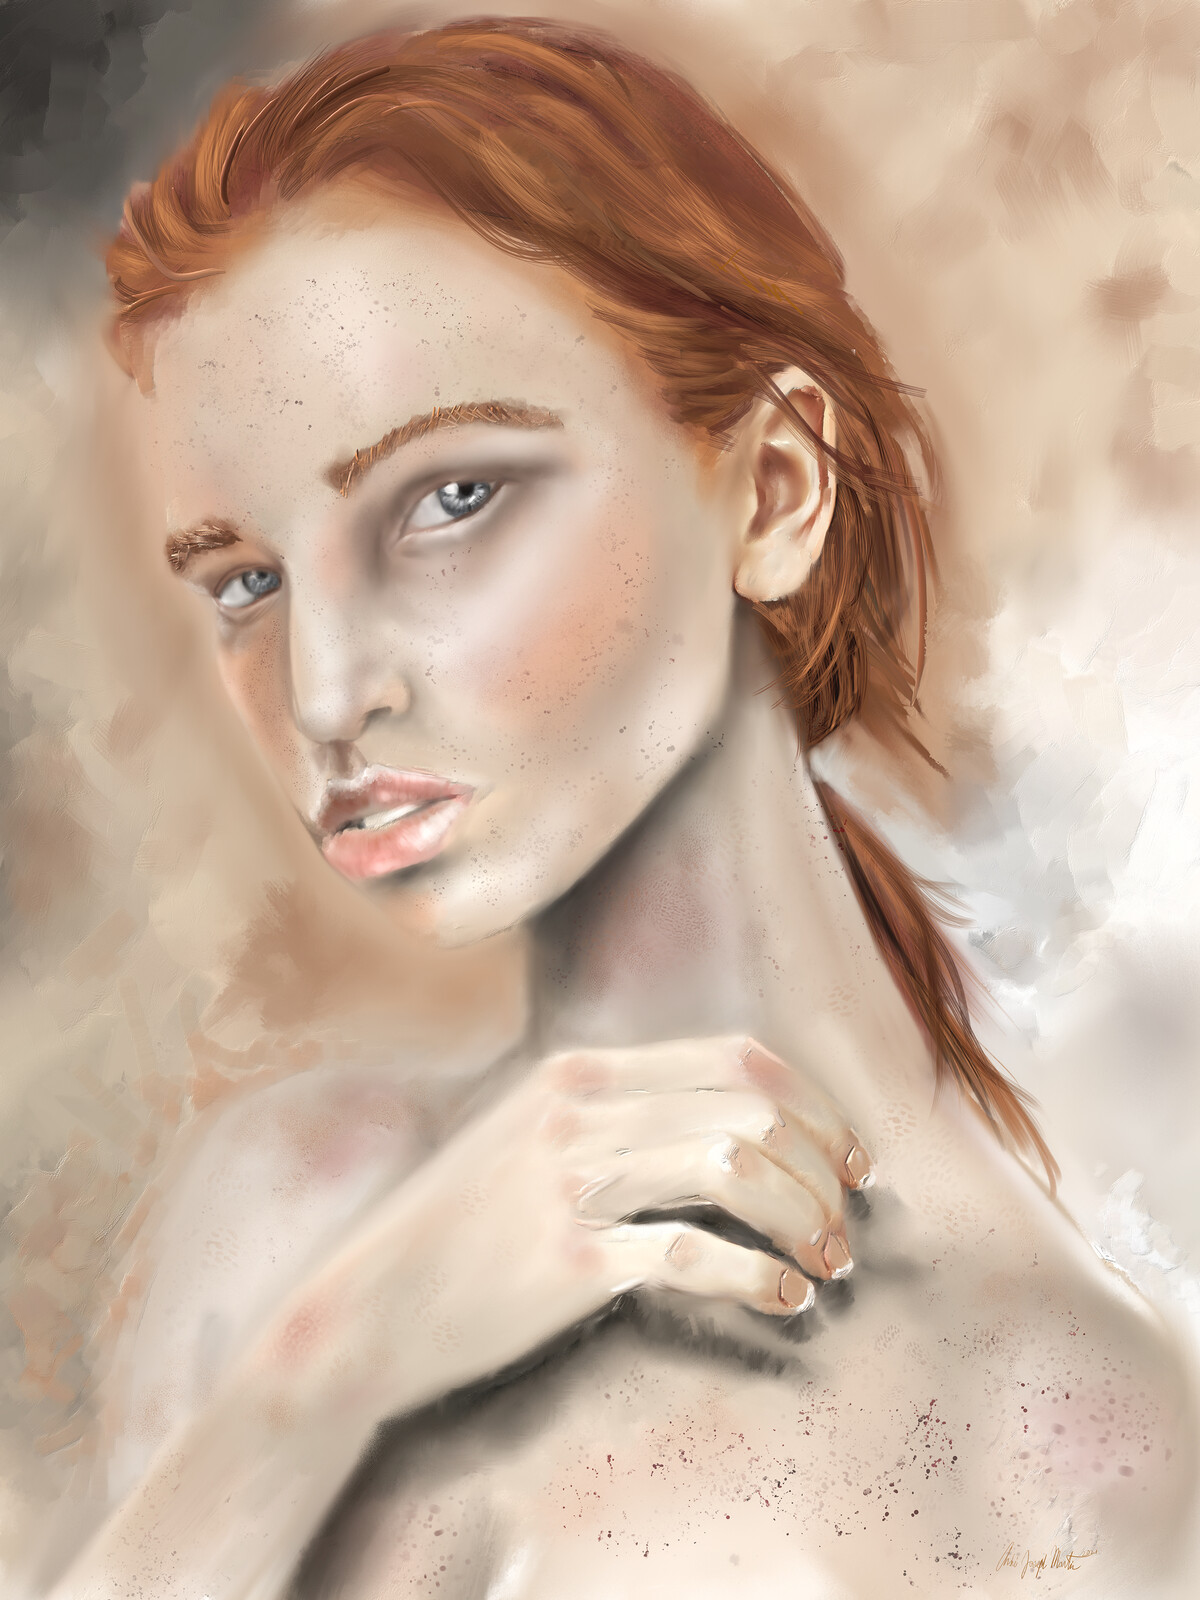 Portrait: Woman With Red Hair & Freckles.